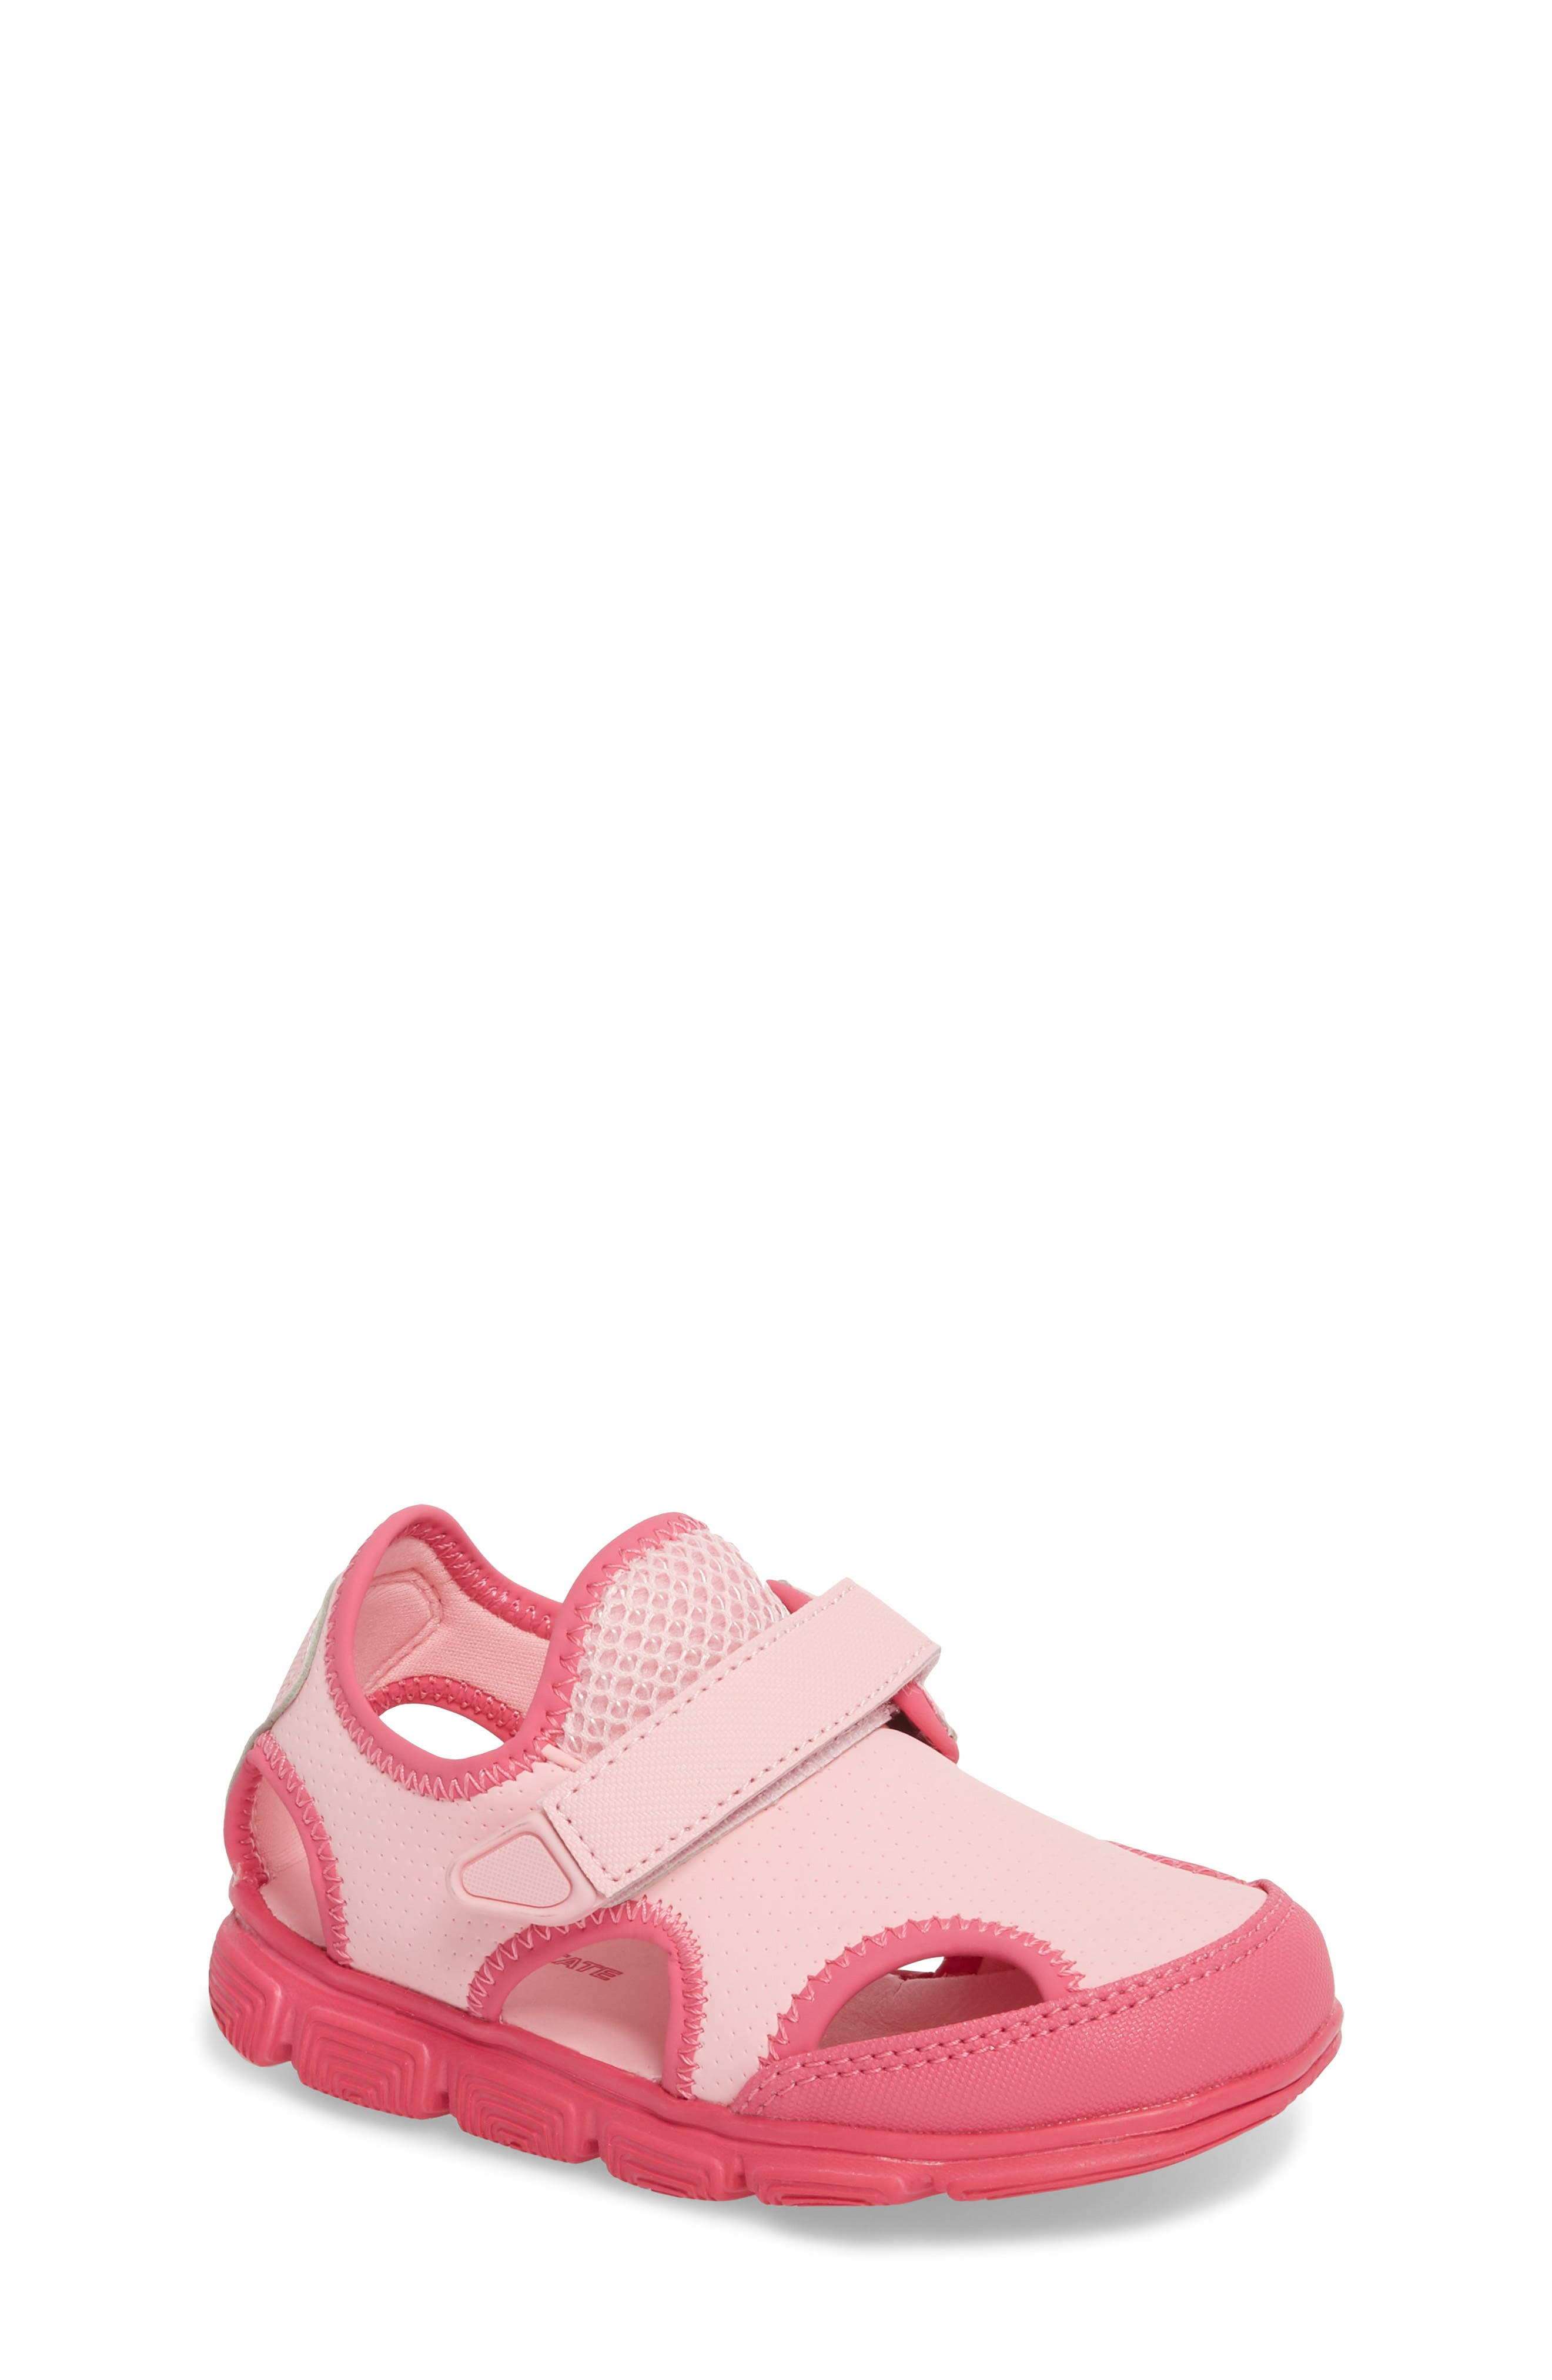 Sophie Water Sandal,                         Main,                         color, Pink/ Dark Pink